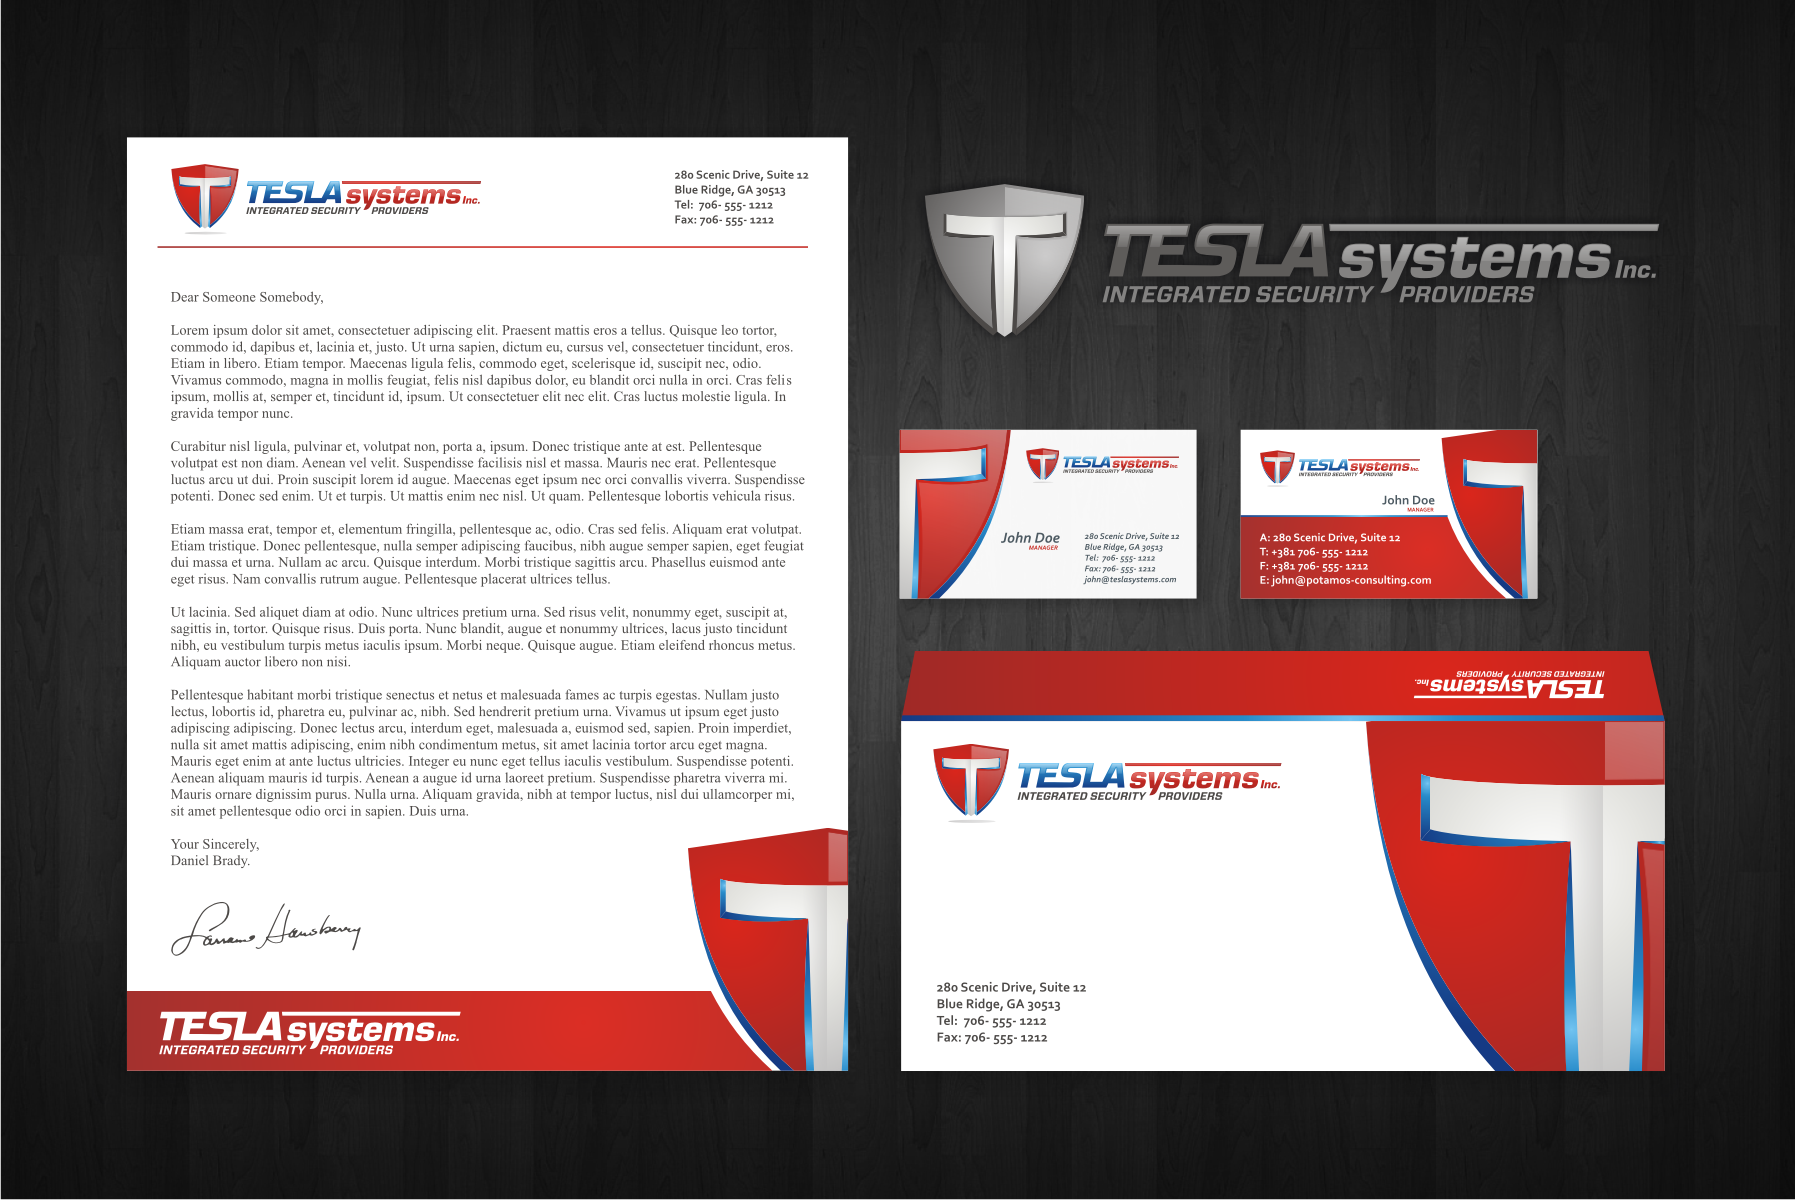 Create the next logo for TESLA SYSTEMS, INC.